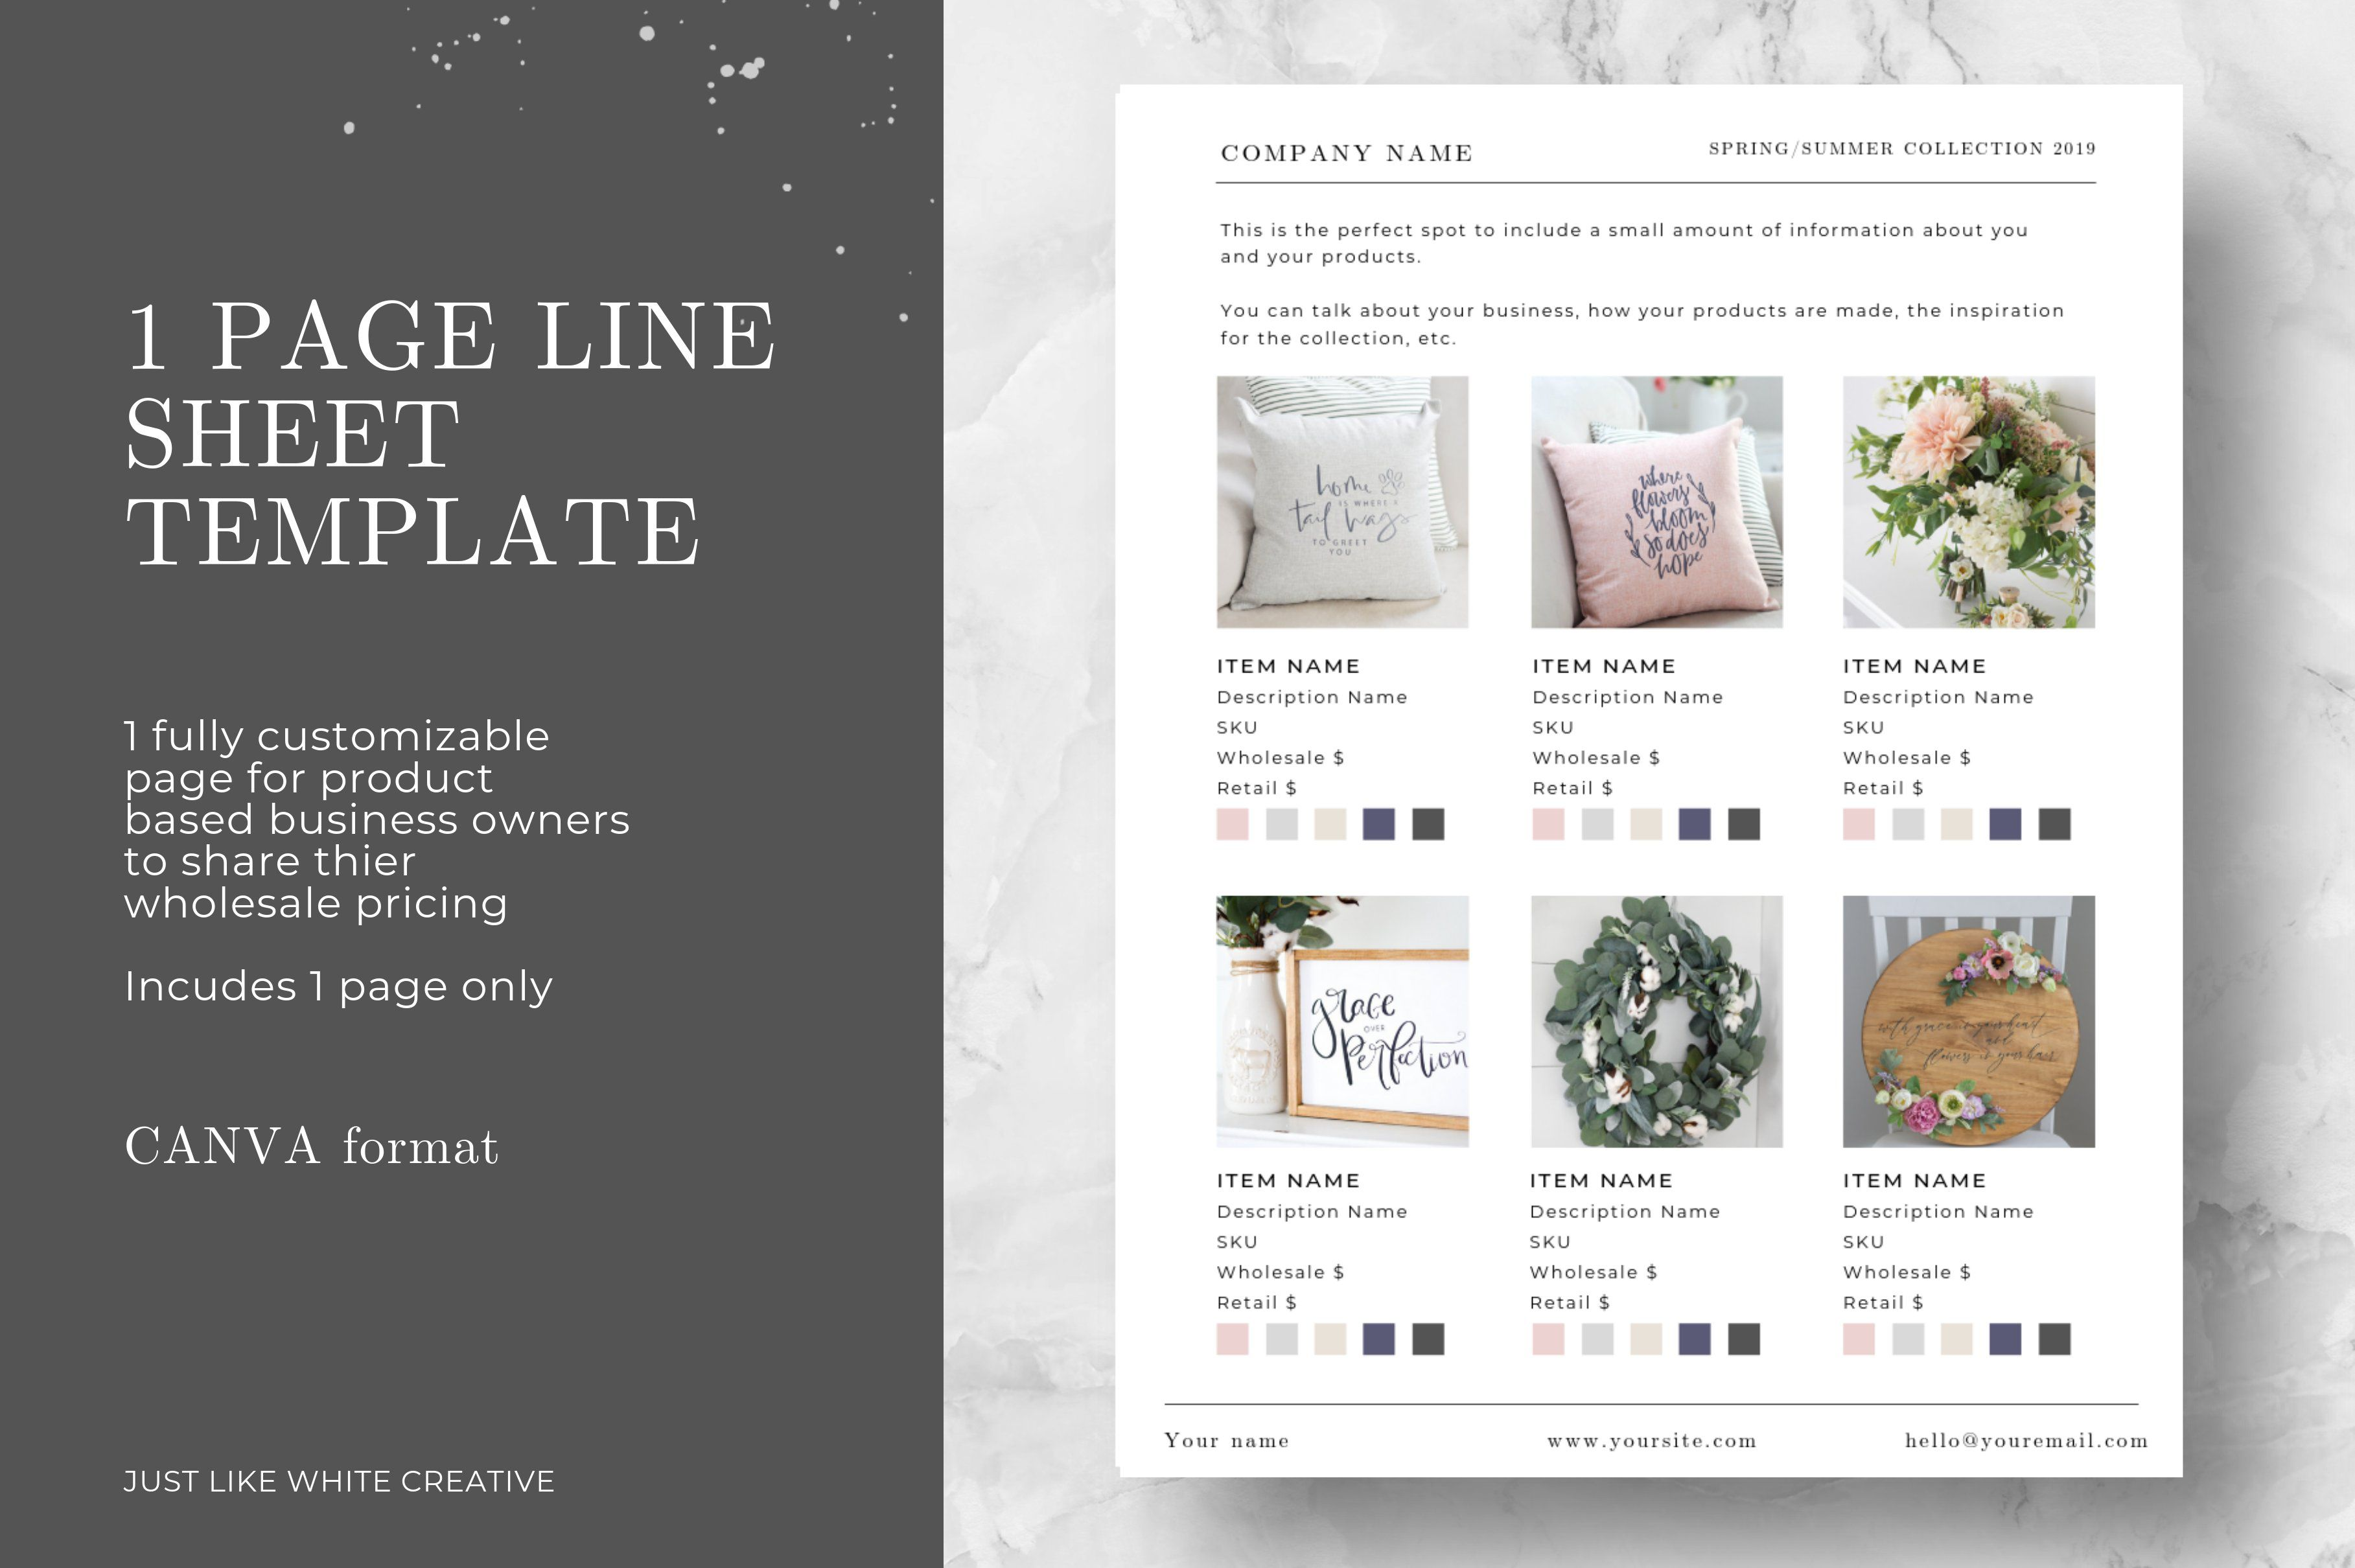 000 Impressive Wholesale Line Sheet Template Highest Quality  ExcelFull